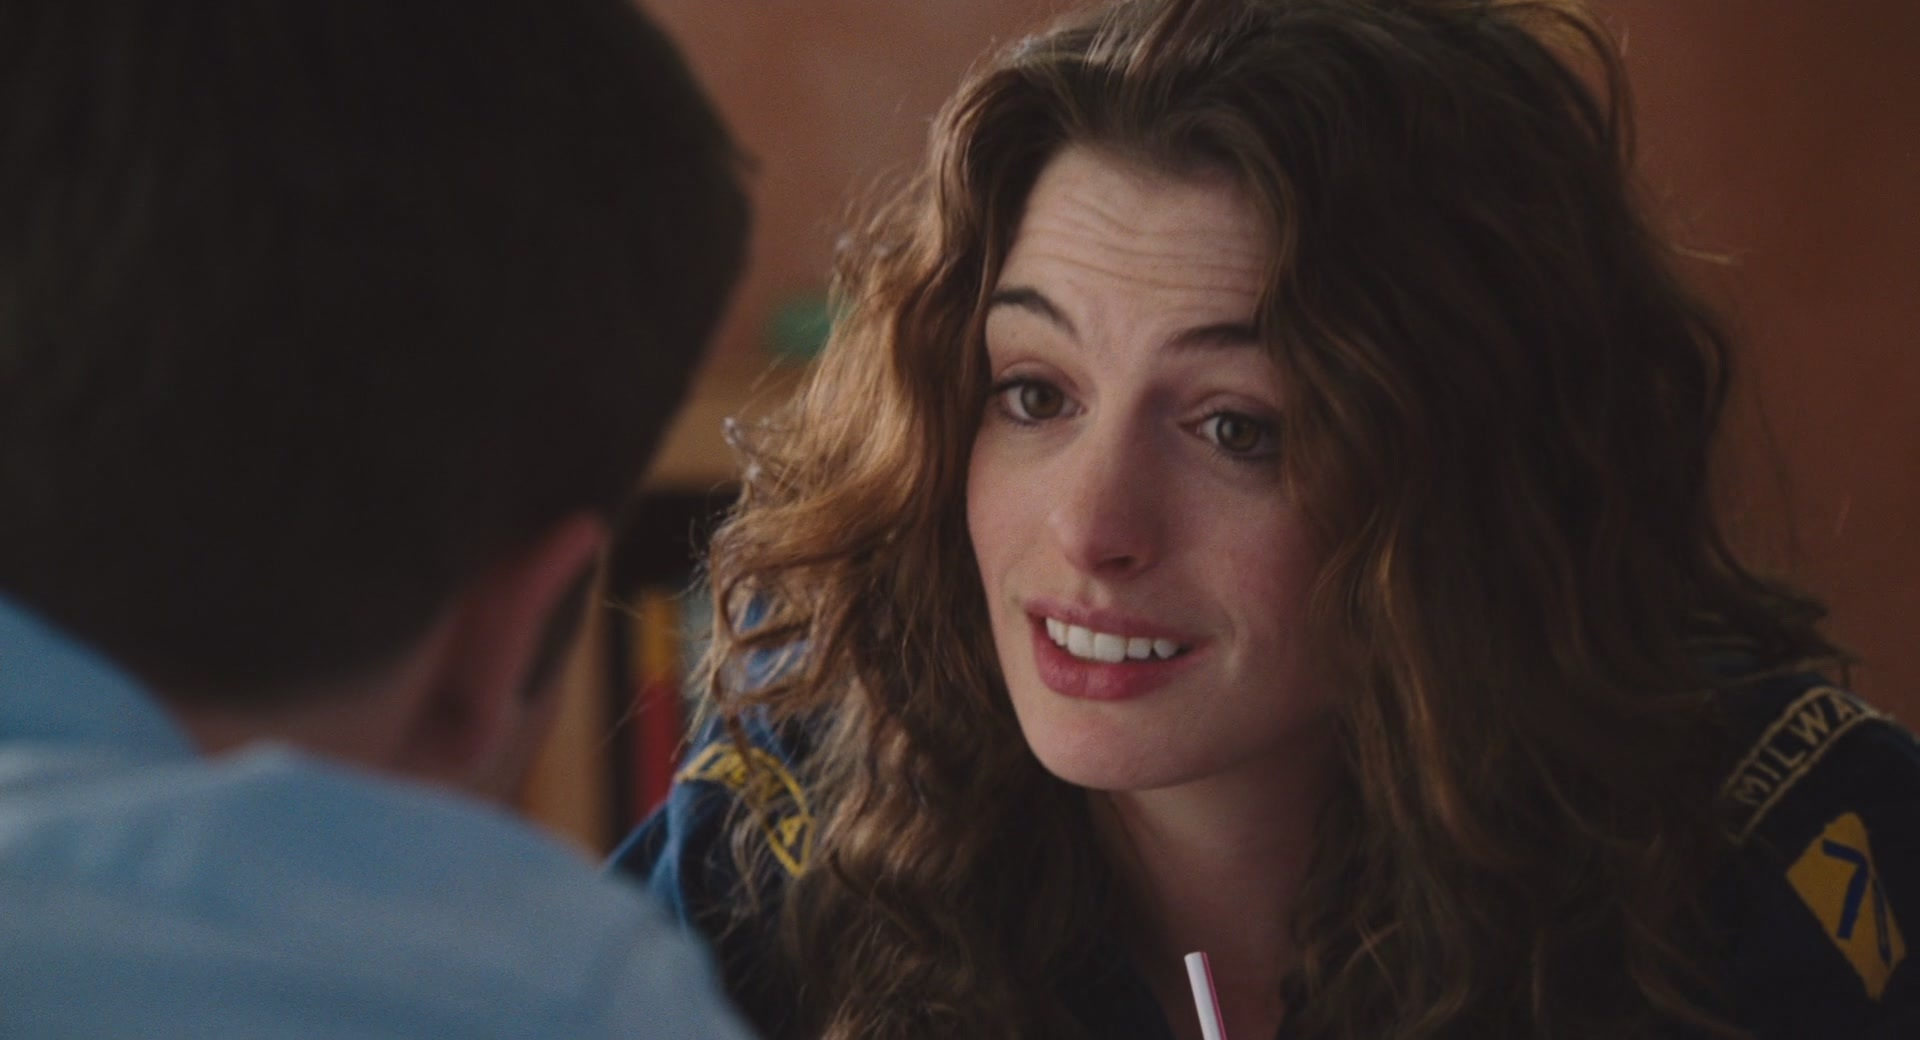 Anne hathaway love and other drgs 3